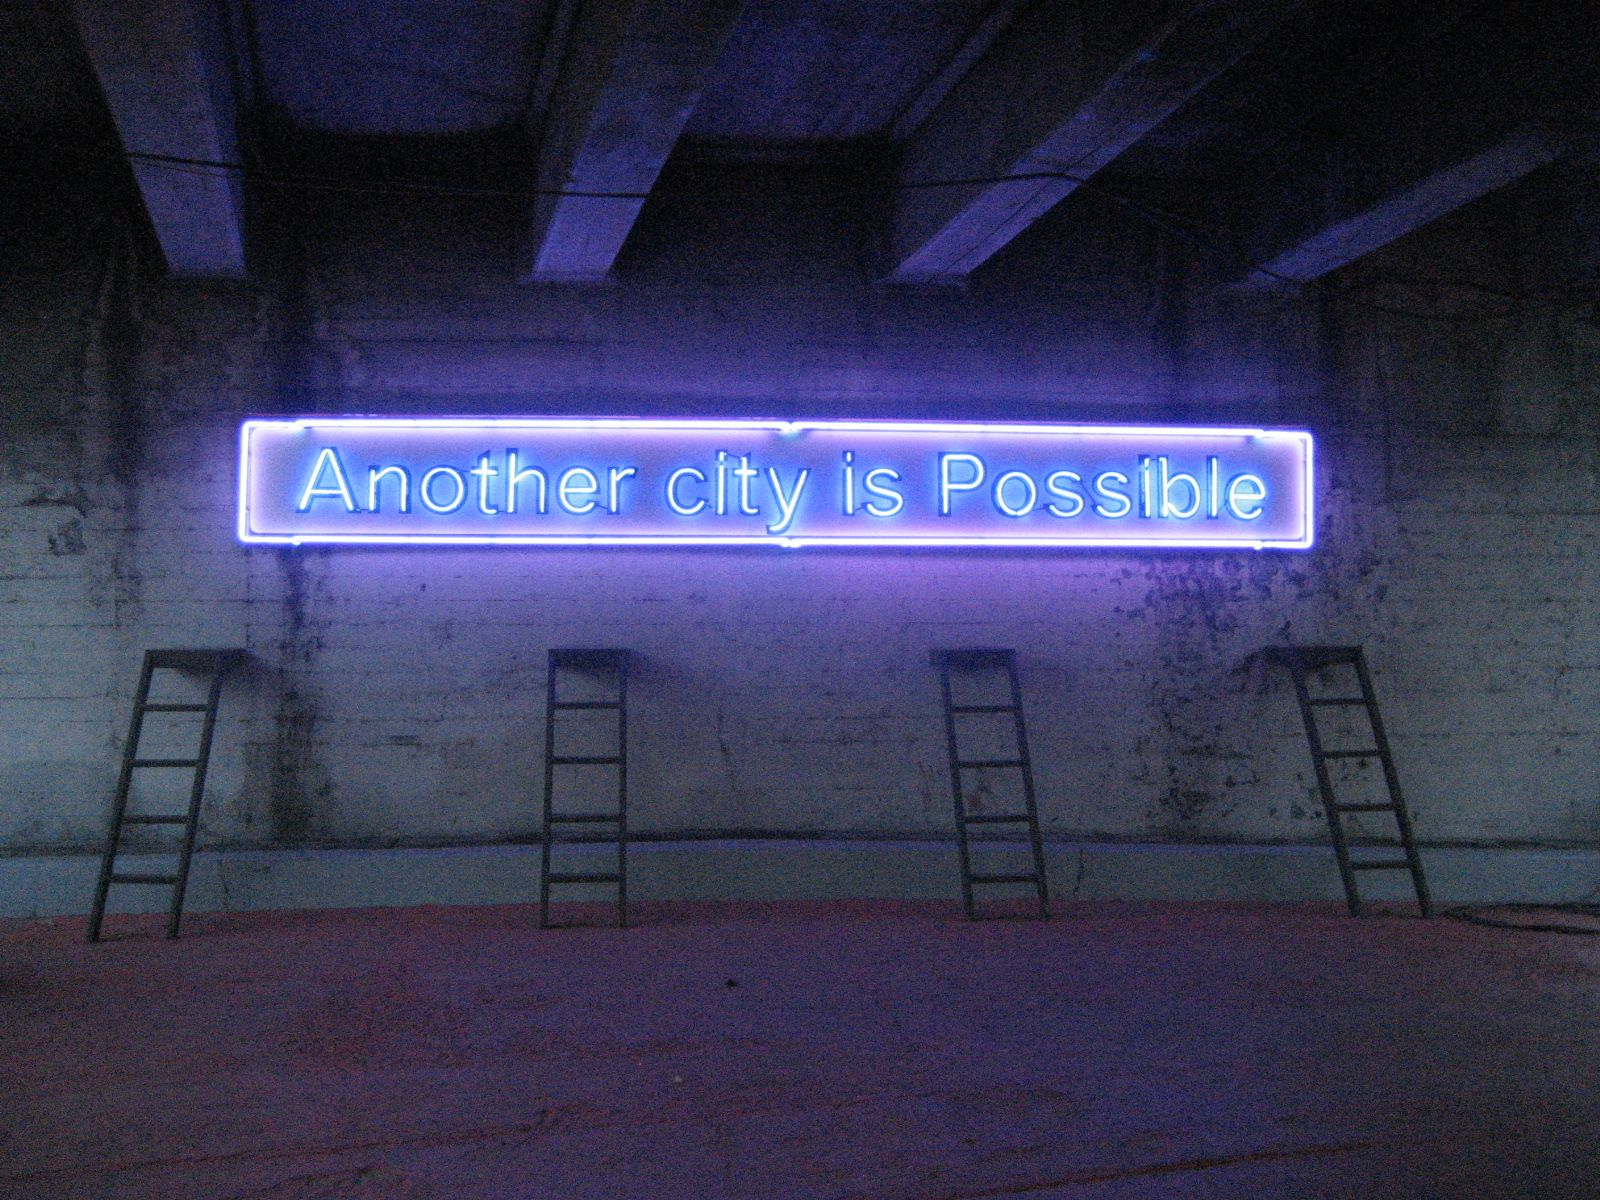 Located in downtown Los Angeles, this neon sign quotes Manuel Castells,